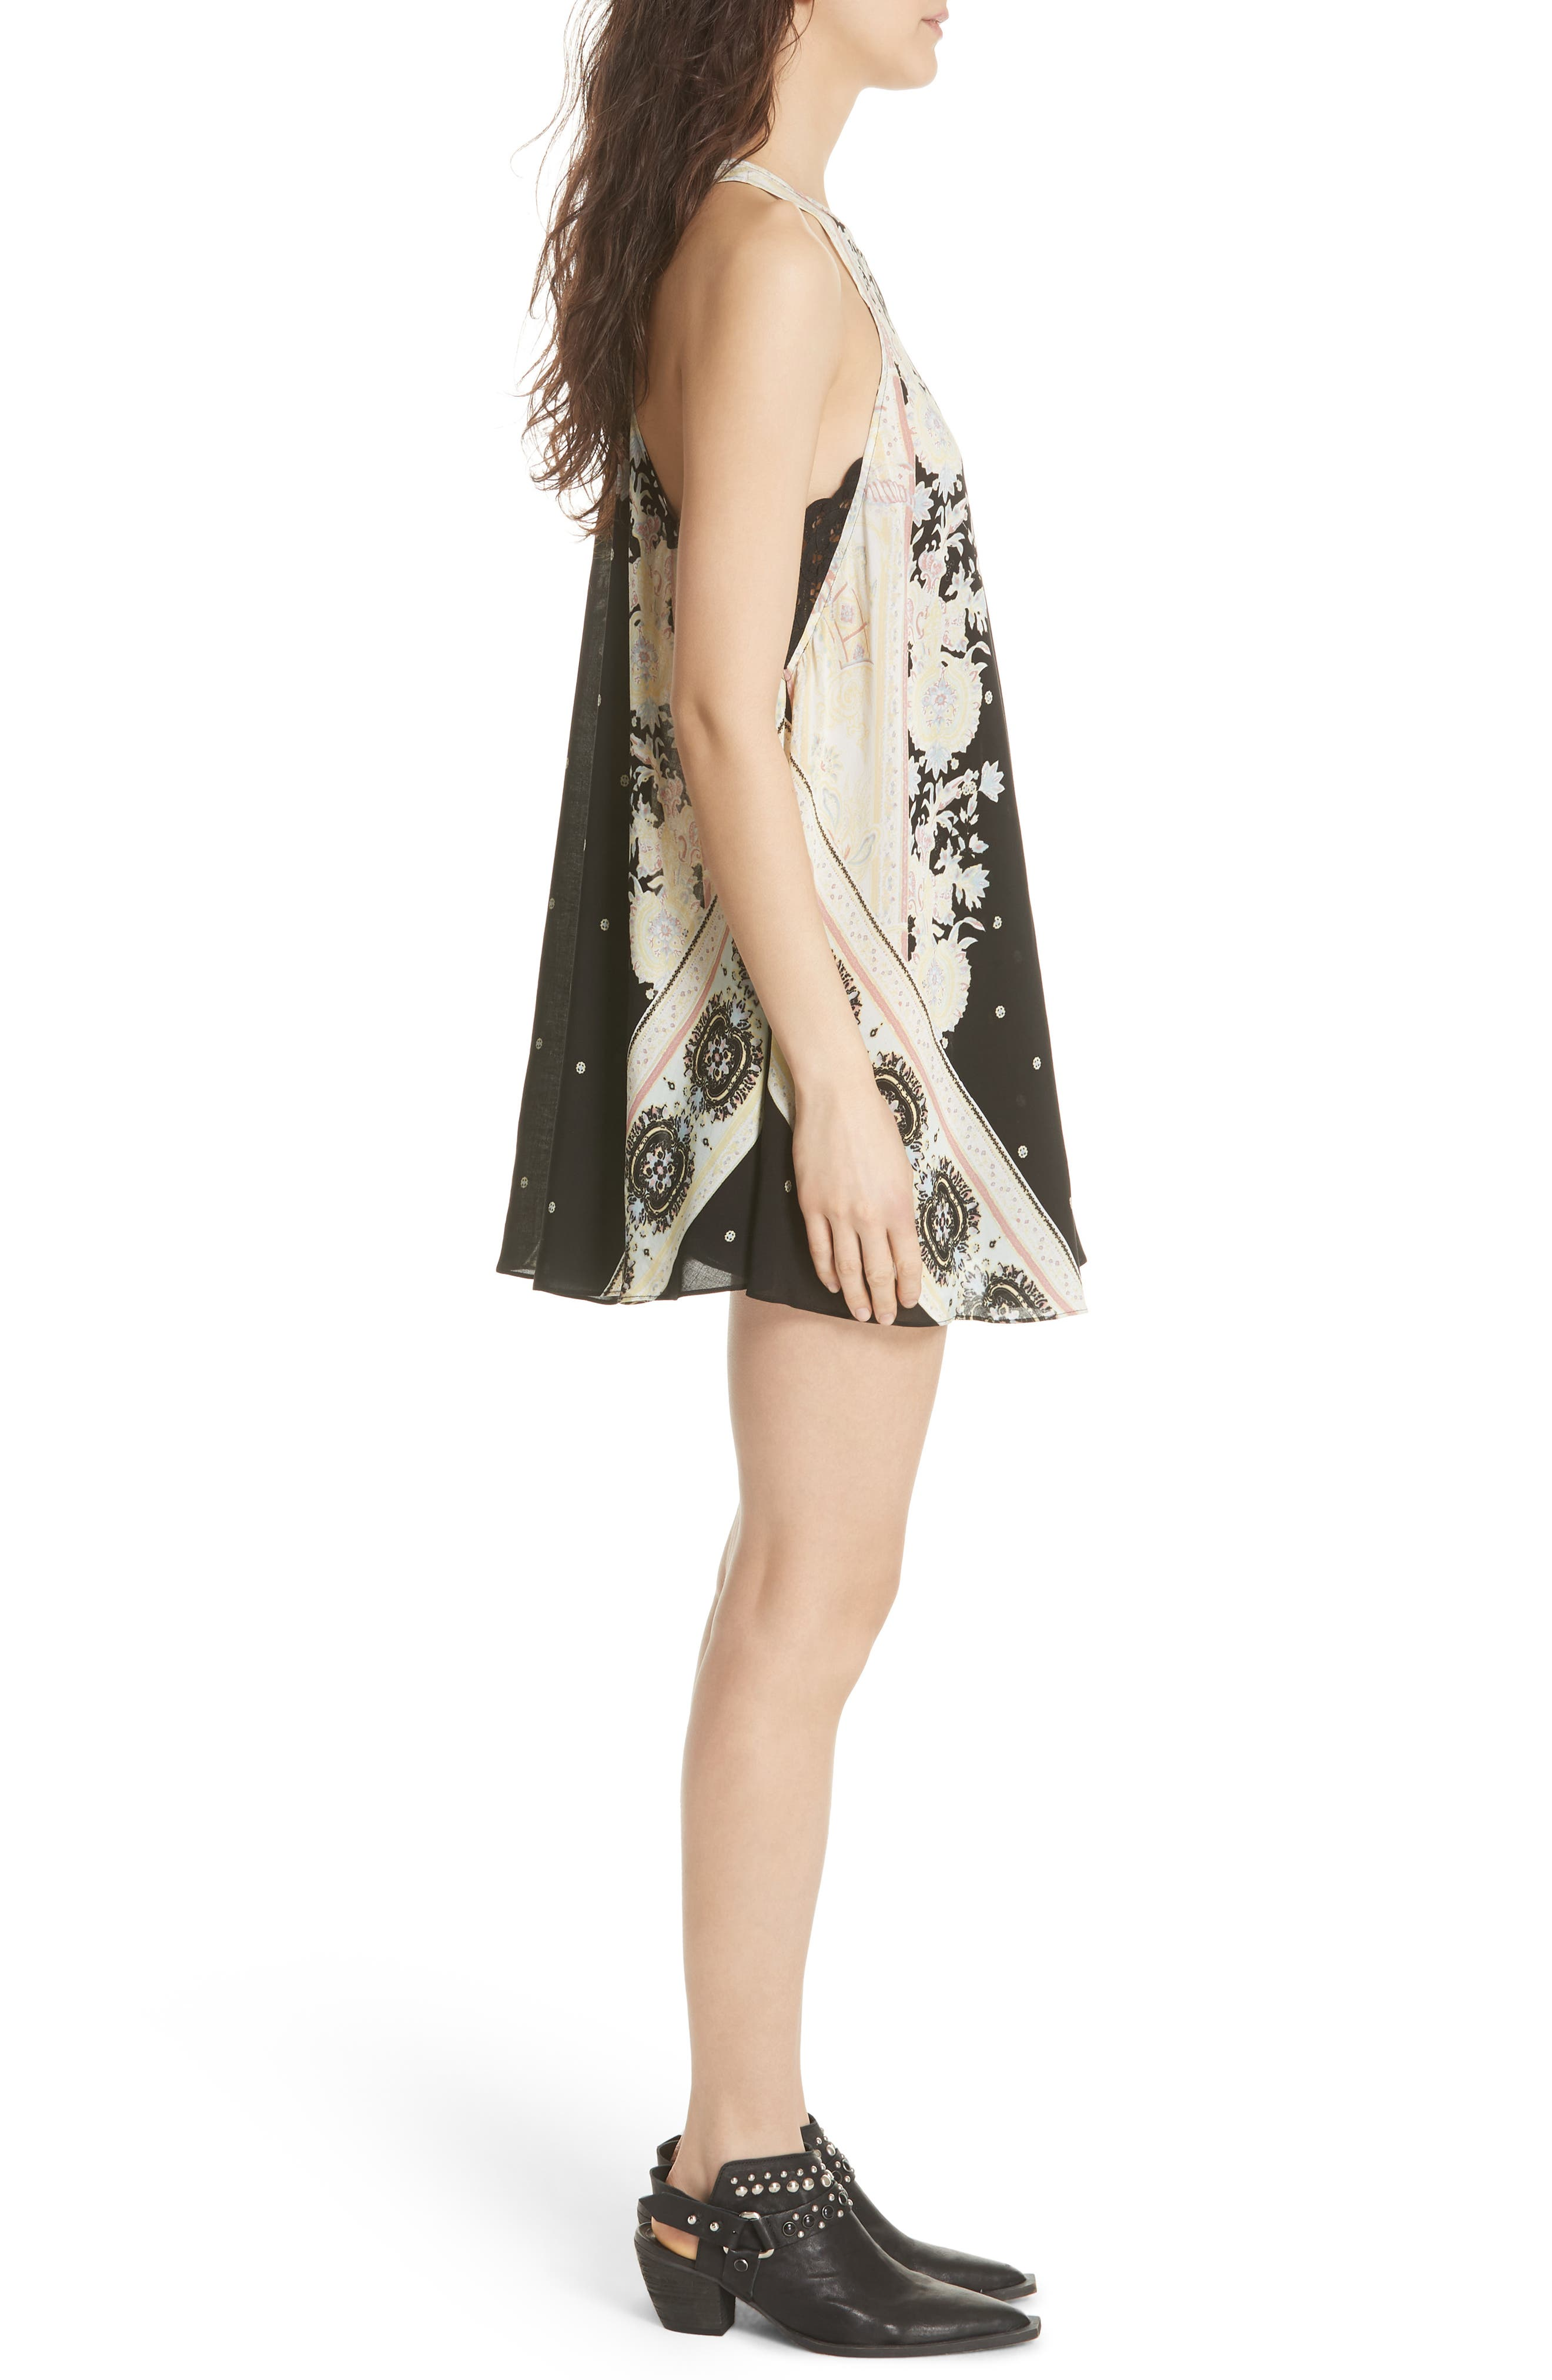 Darjeeling Print Minidress,                             Alternate thumbnail 3, color,                             BLACK COMBO